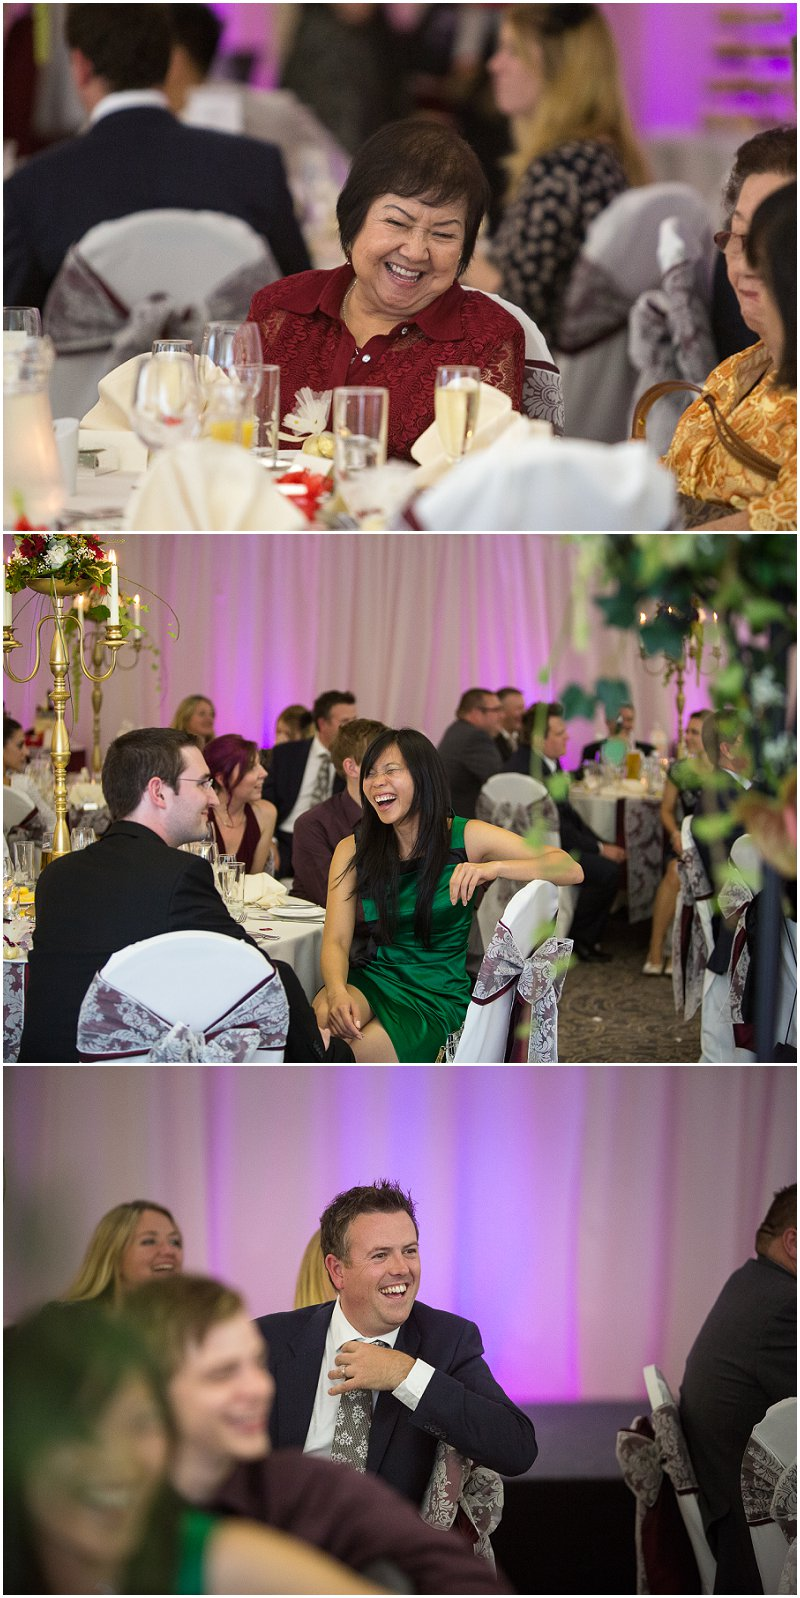 Guests laughing during speeches | Lancashire Wedding Photography